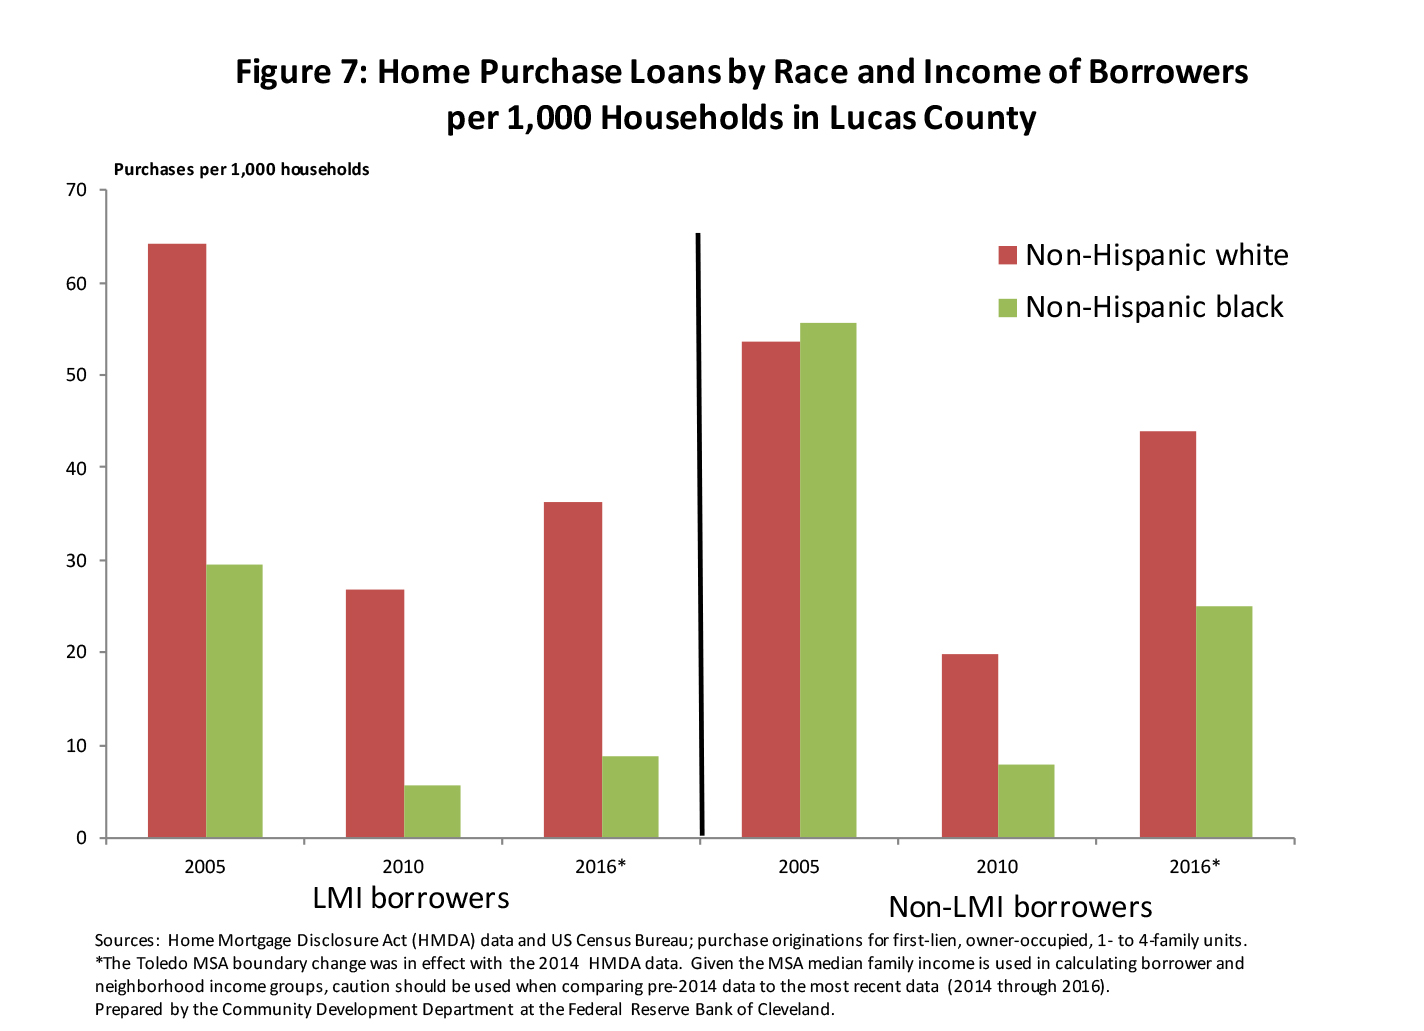 Figure 7: Home Purchase Loans by Race and Income of Borrowers per 1,000 Households in Lucas County